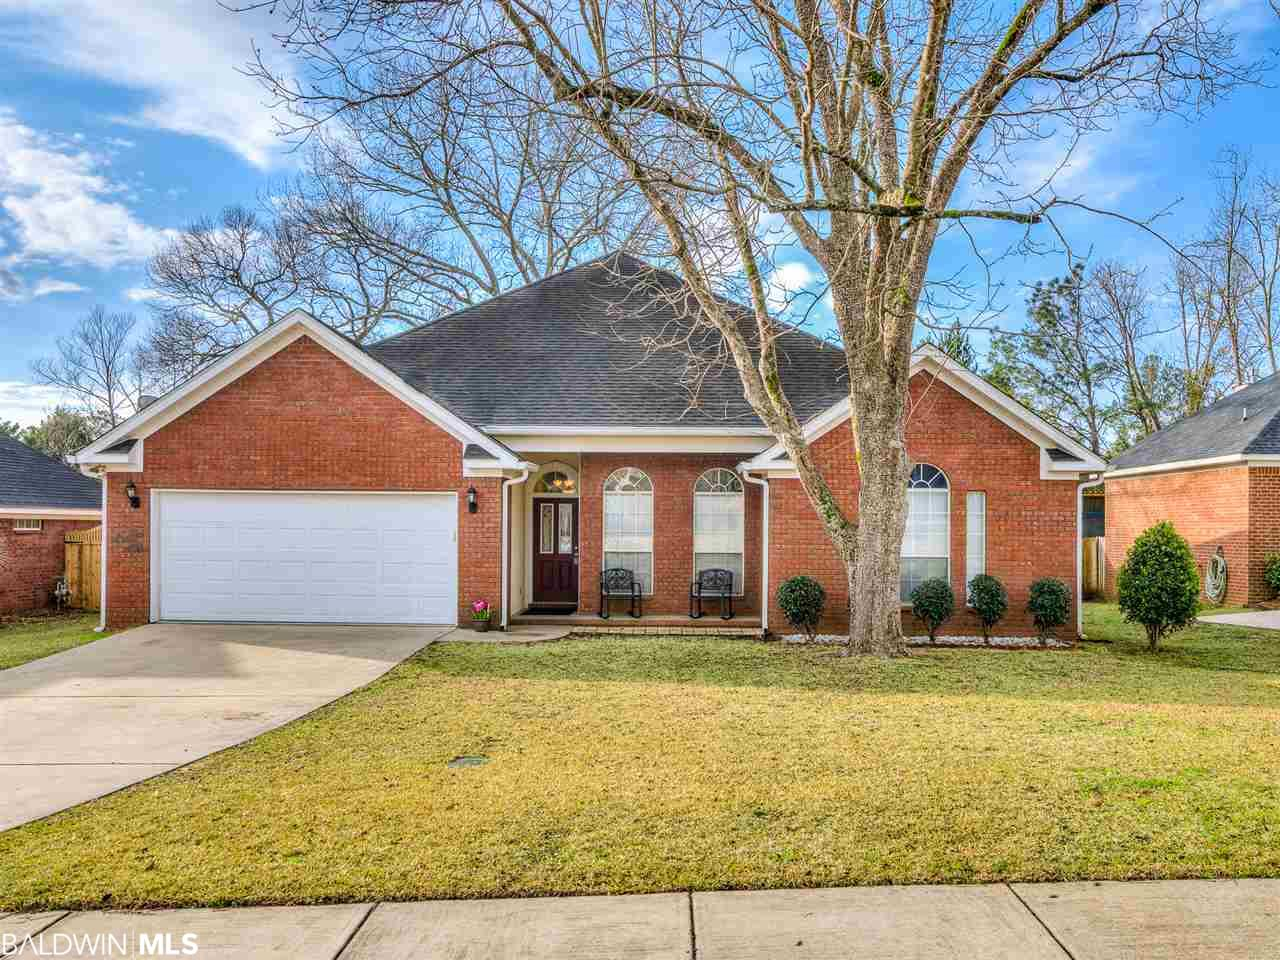 9230 Huckleberry Drive, Spanish Fort, AL 36527